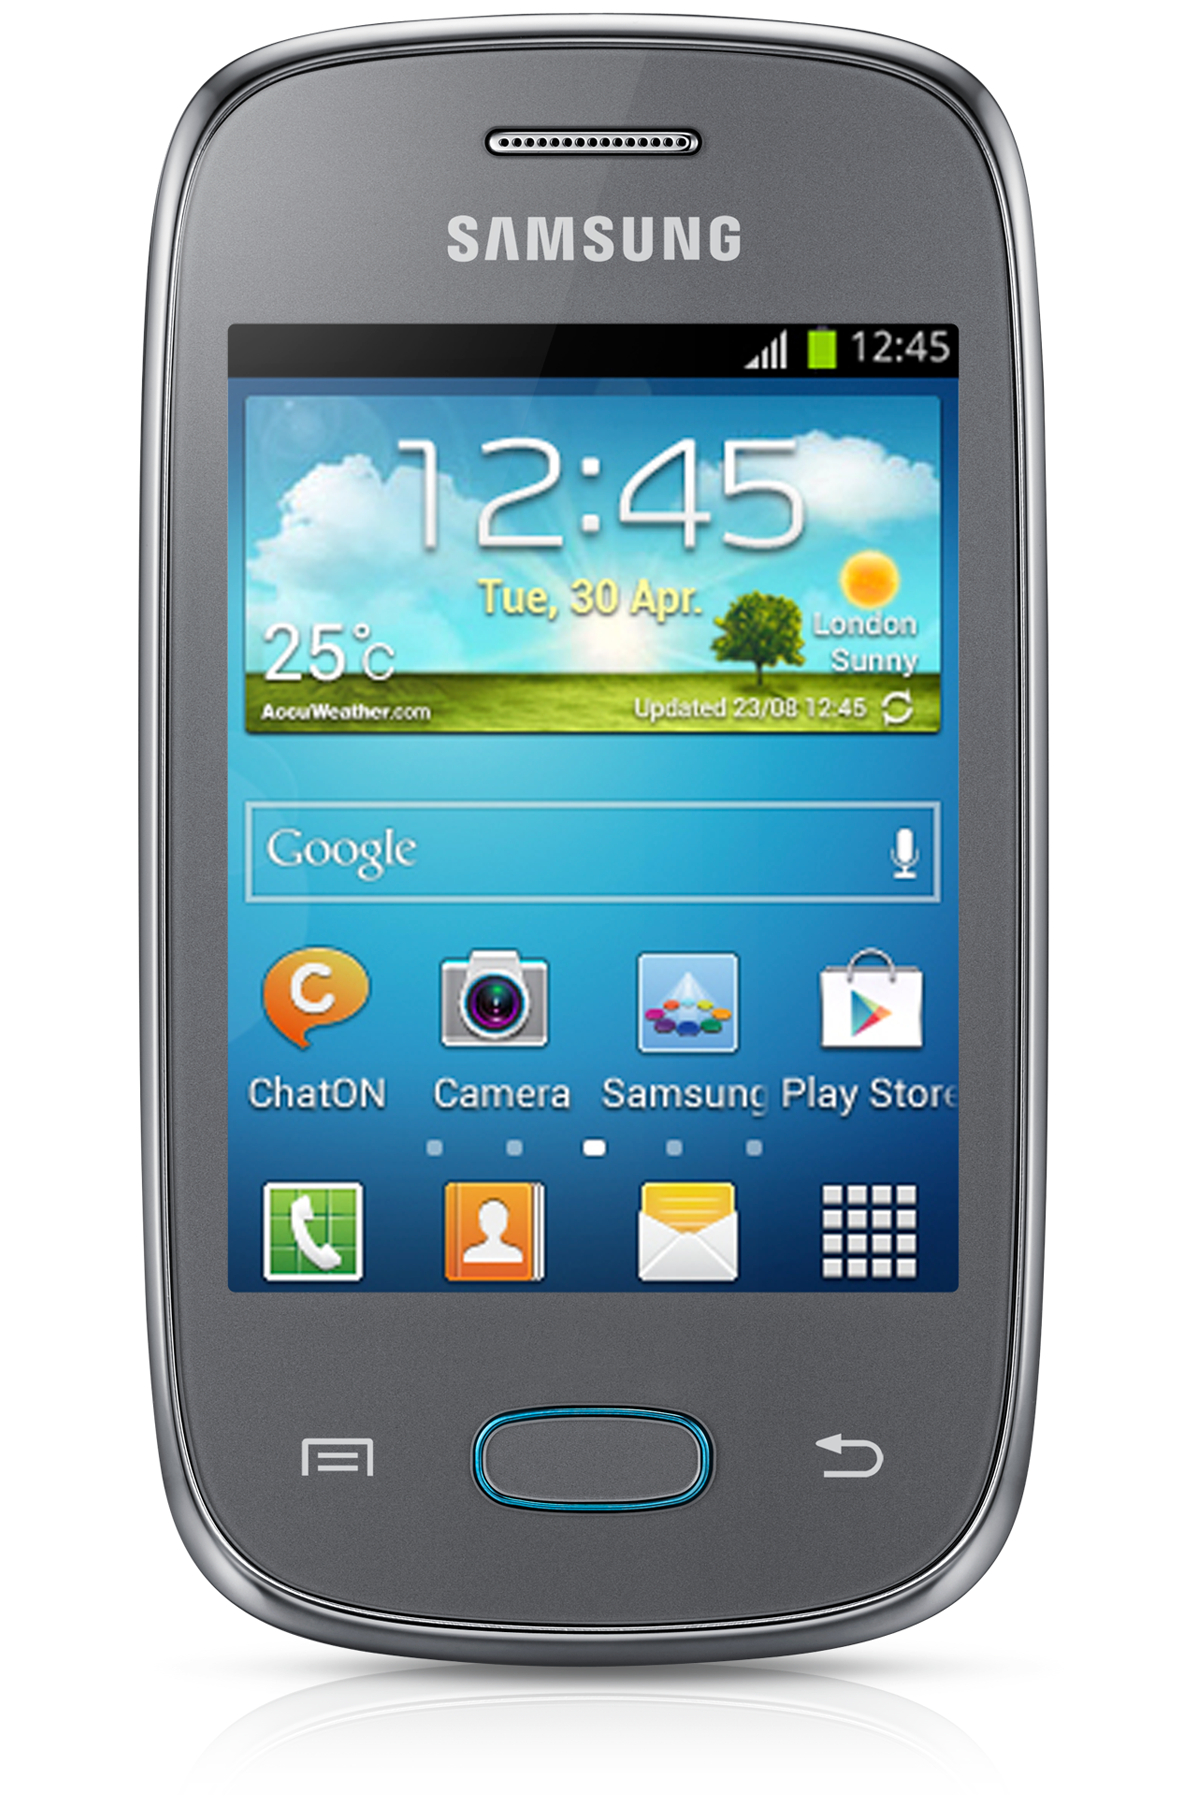 Samsung GALAXY Pocket Neo - Android 4.1 Jelly Bean Mobile Phone S5310